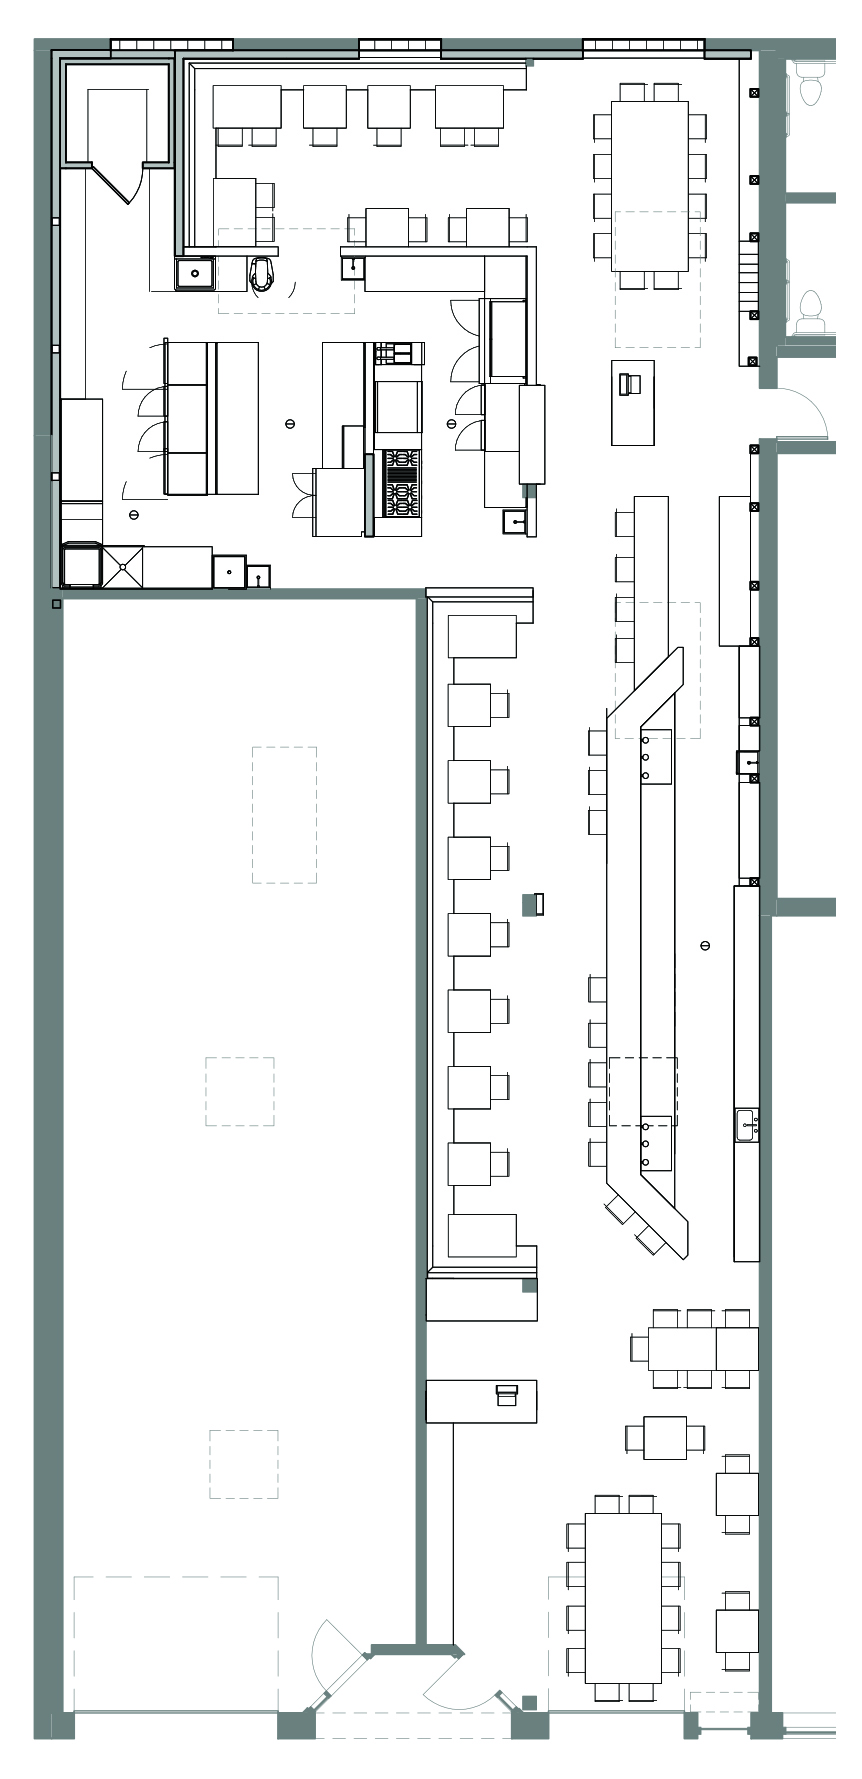 Harka Architecture_Proud Mary Cafe_Coffee Shop Restaurant Plan.jpg